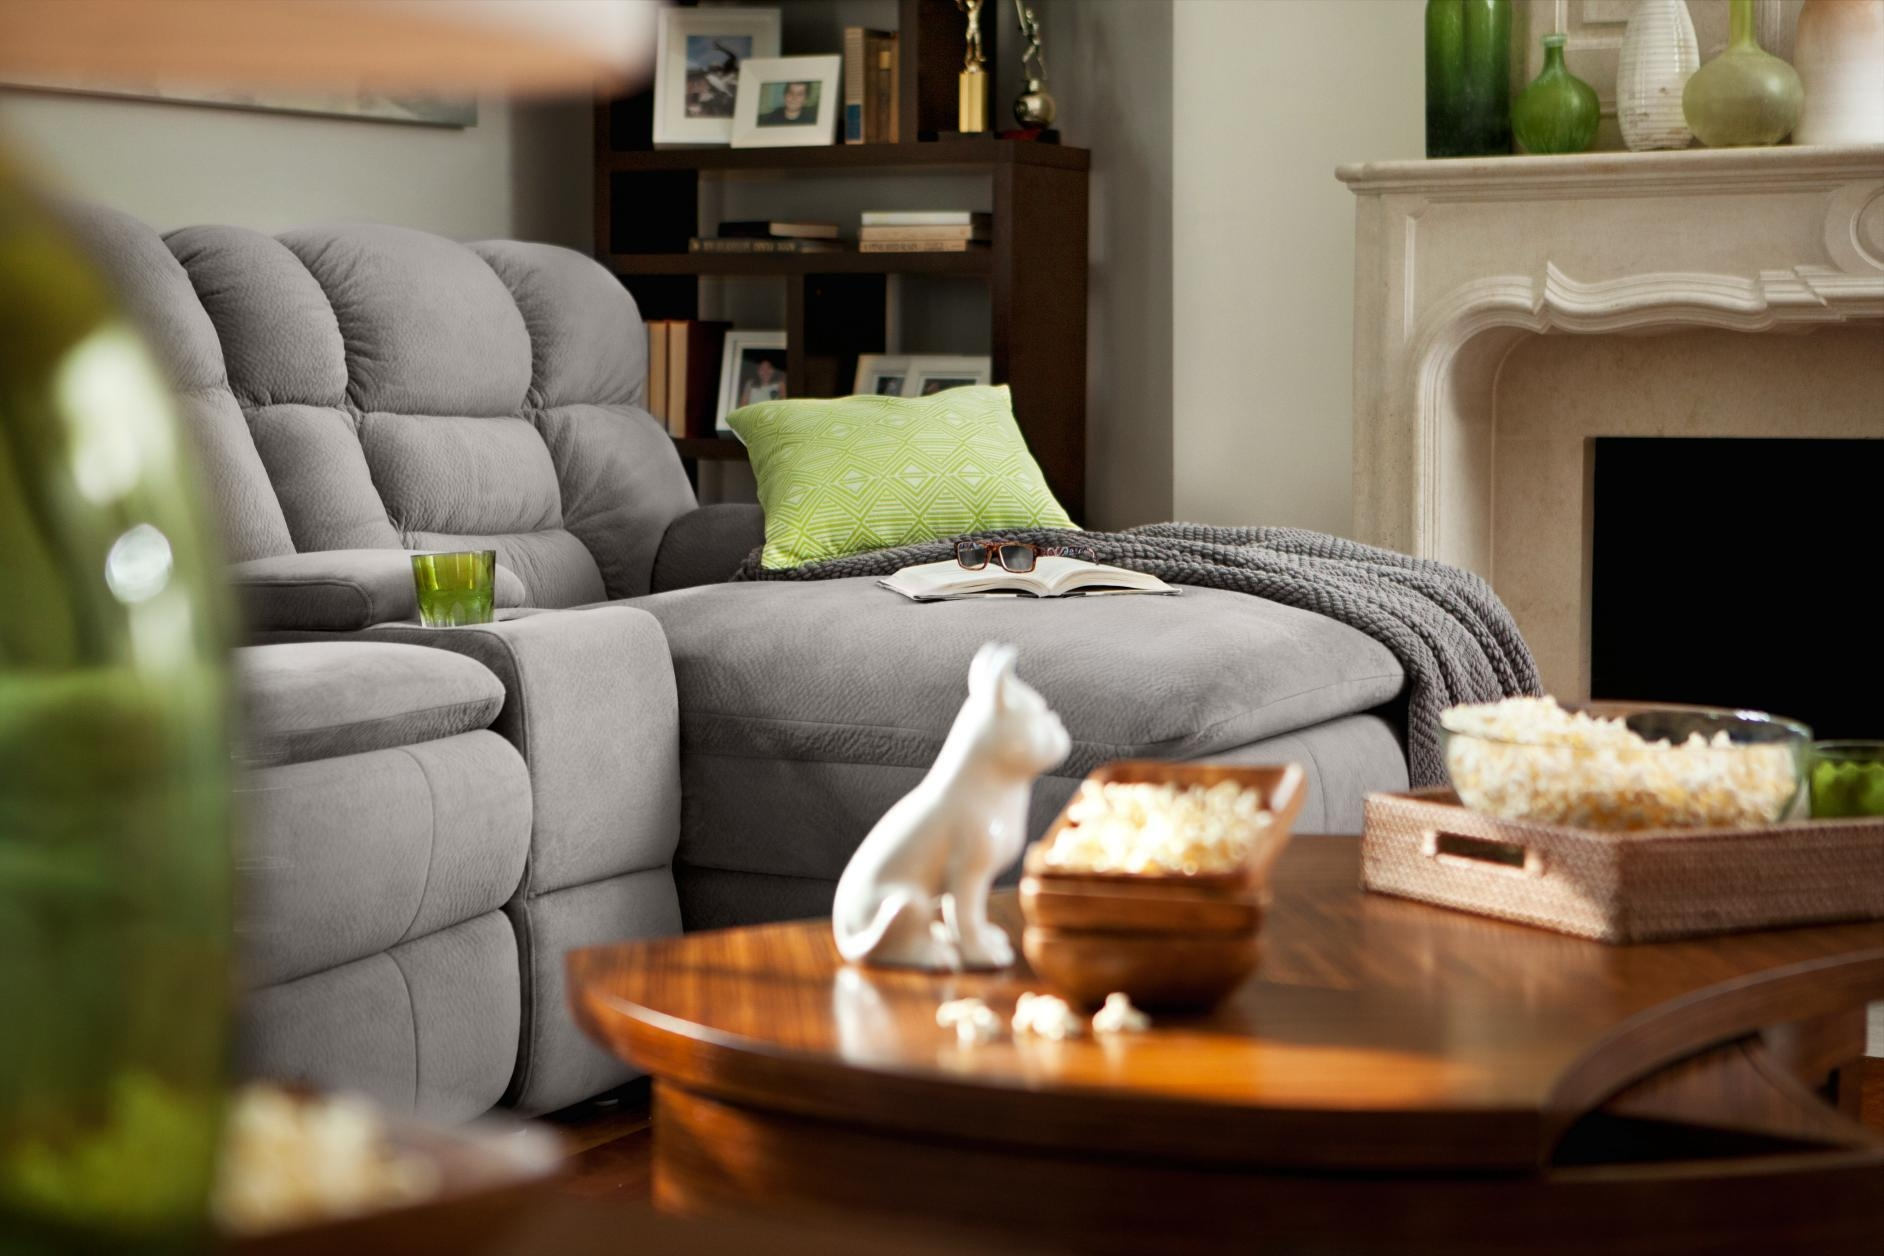 The Best Big Comfy Couches | Value City Furniture For Big Comfy Sofas (Image 21 of 25)